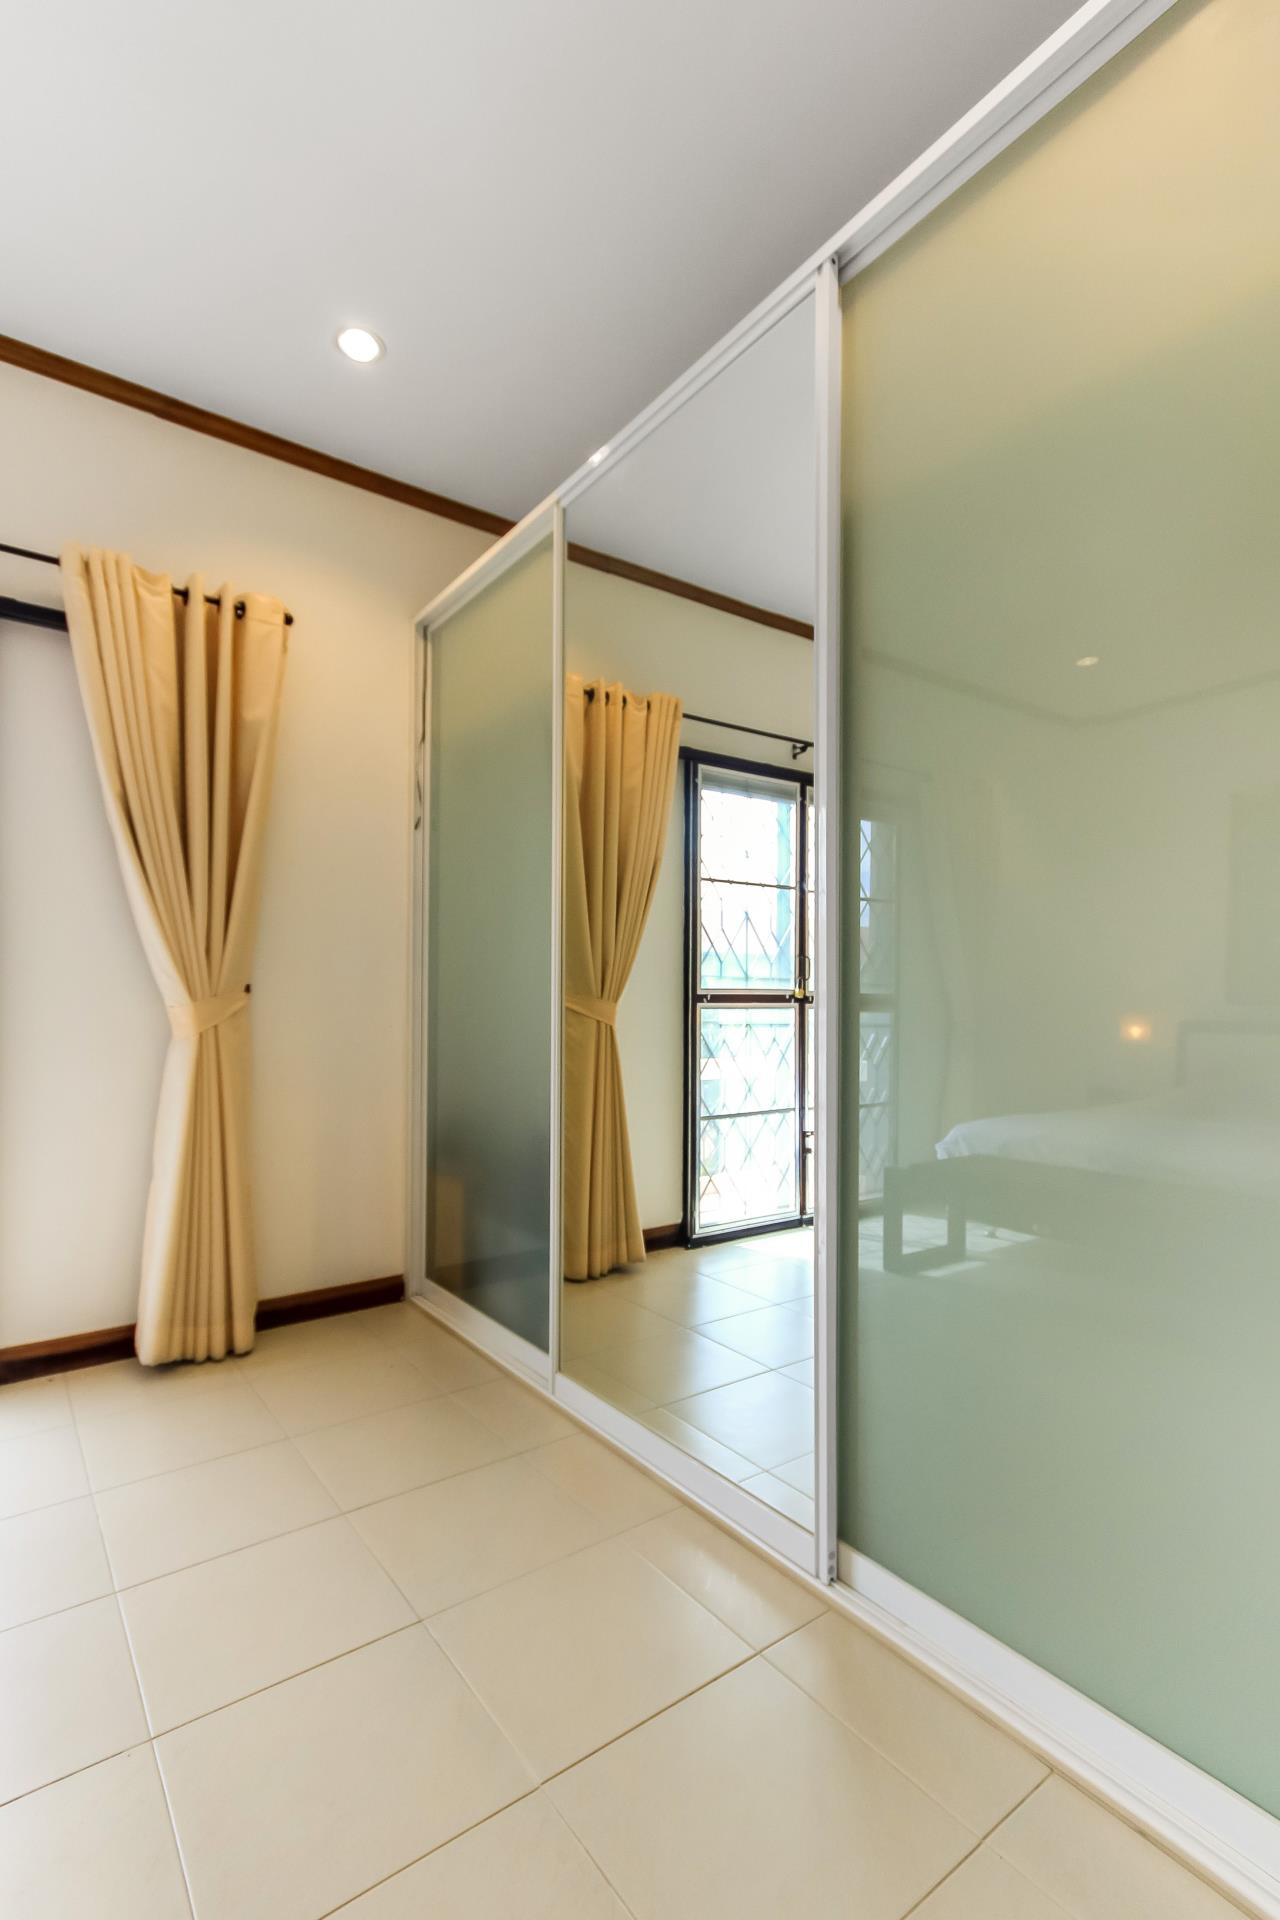 Thaiproperty1 Agency's A very nice townhouse in great location 15